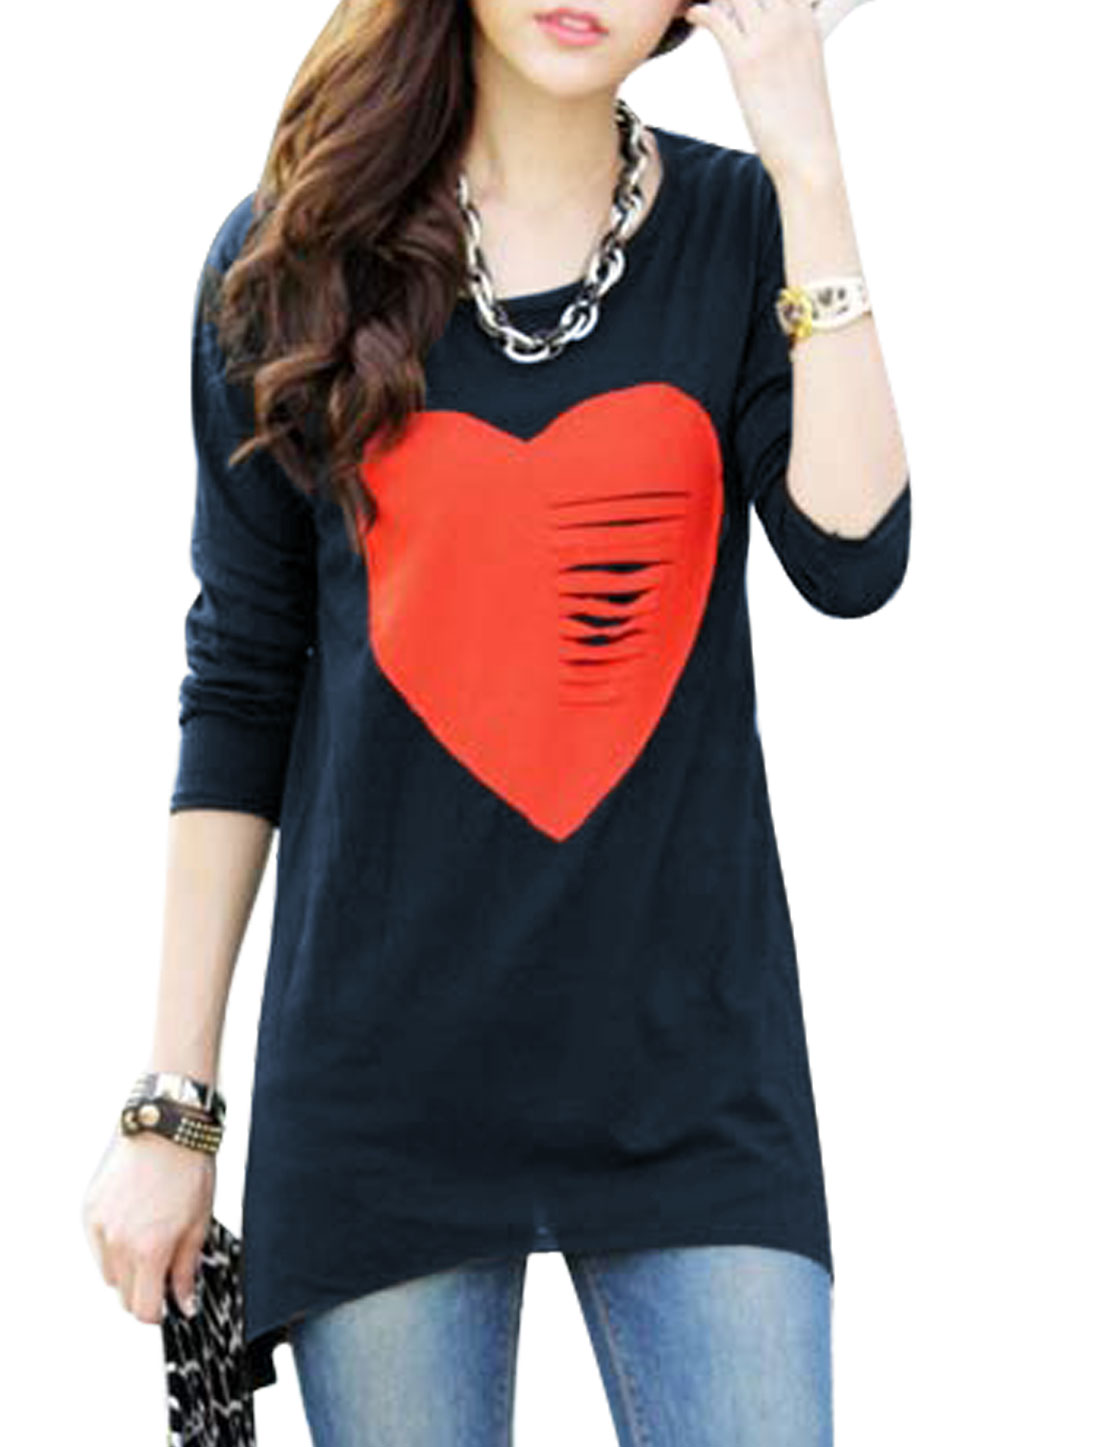 Heart Applique Asymmetric Hem Stylish Navy Blue Tunic Shirt for Women S